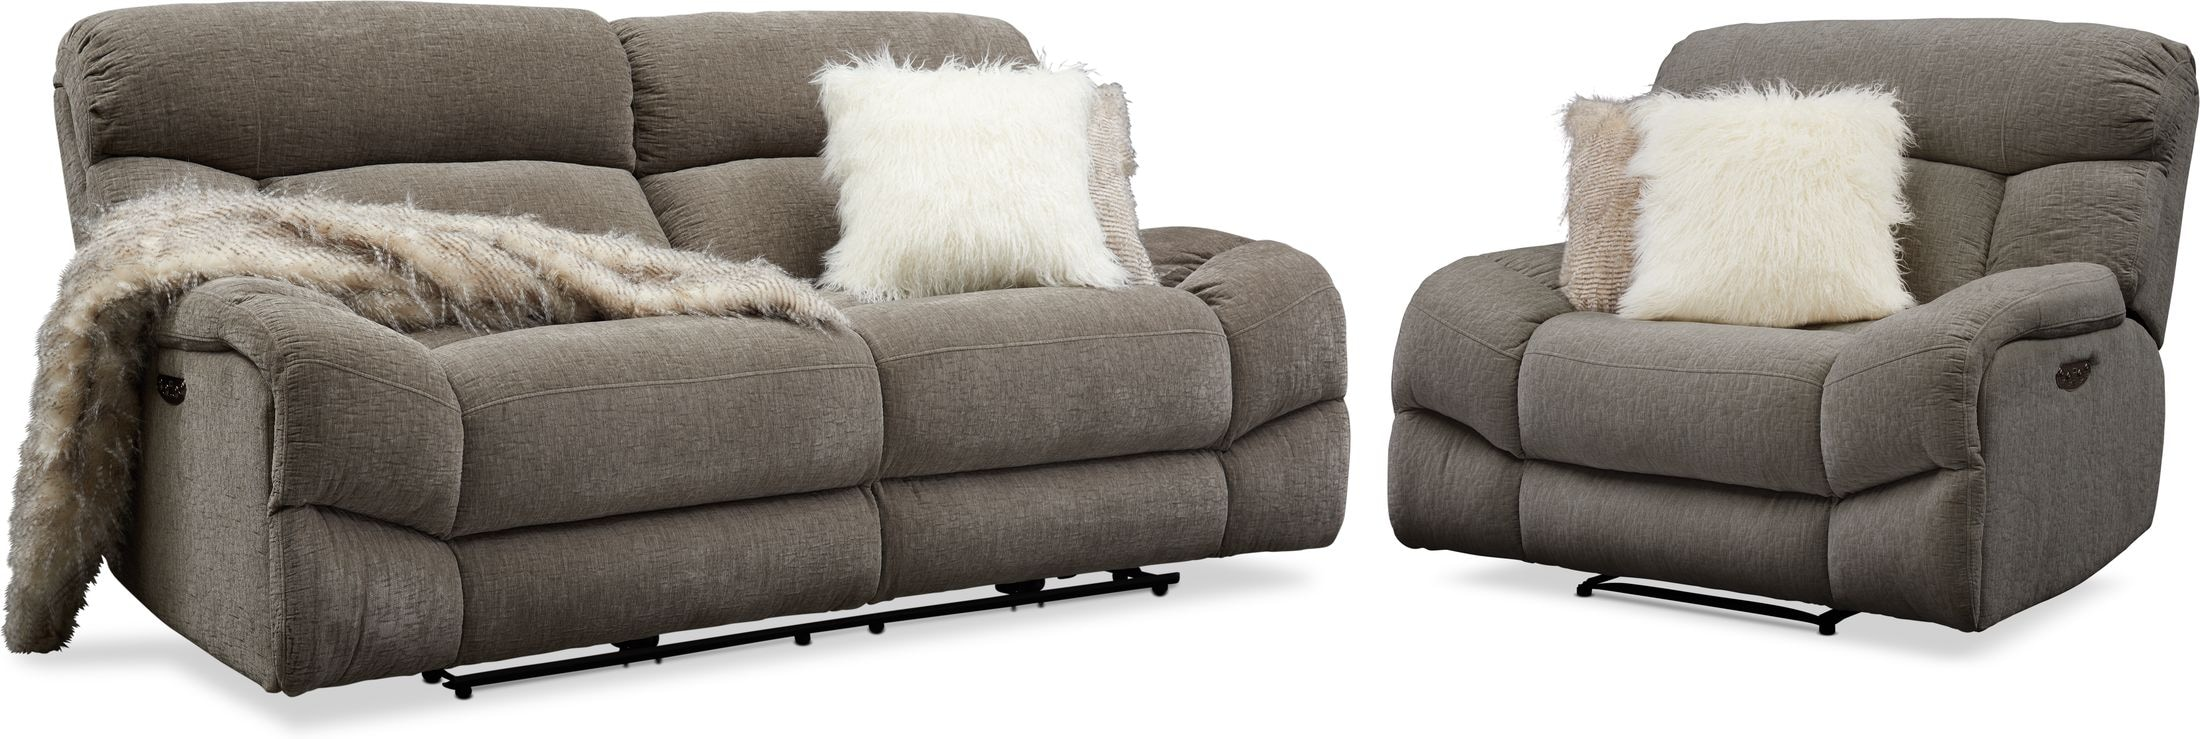 Living Room Furniture - Wave Dual-Power Reclining Sofa and Recliner Set